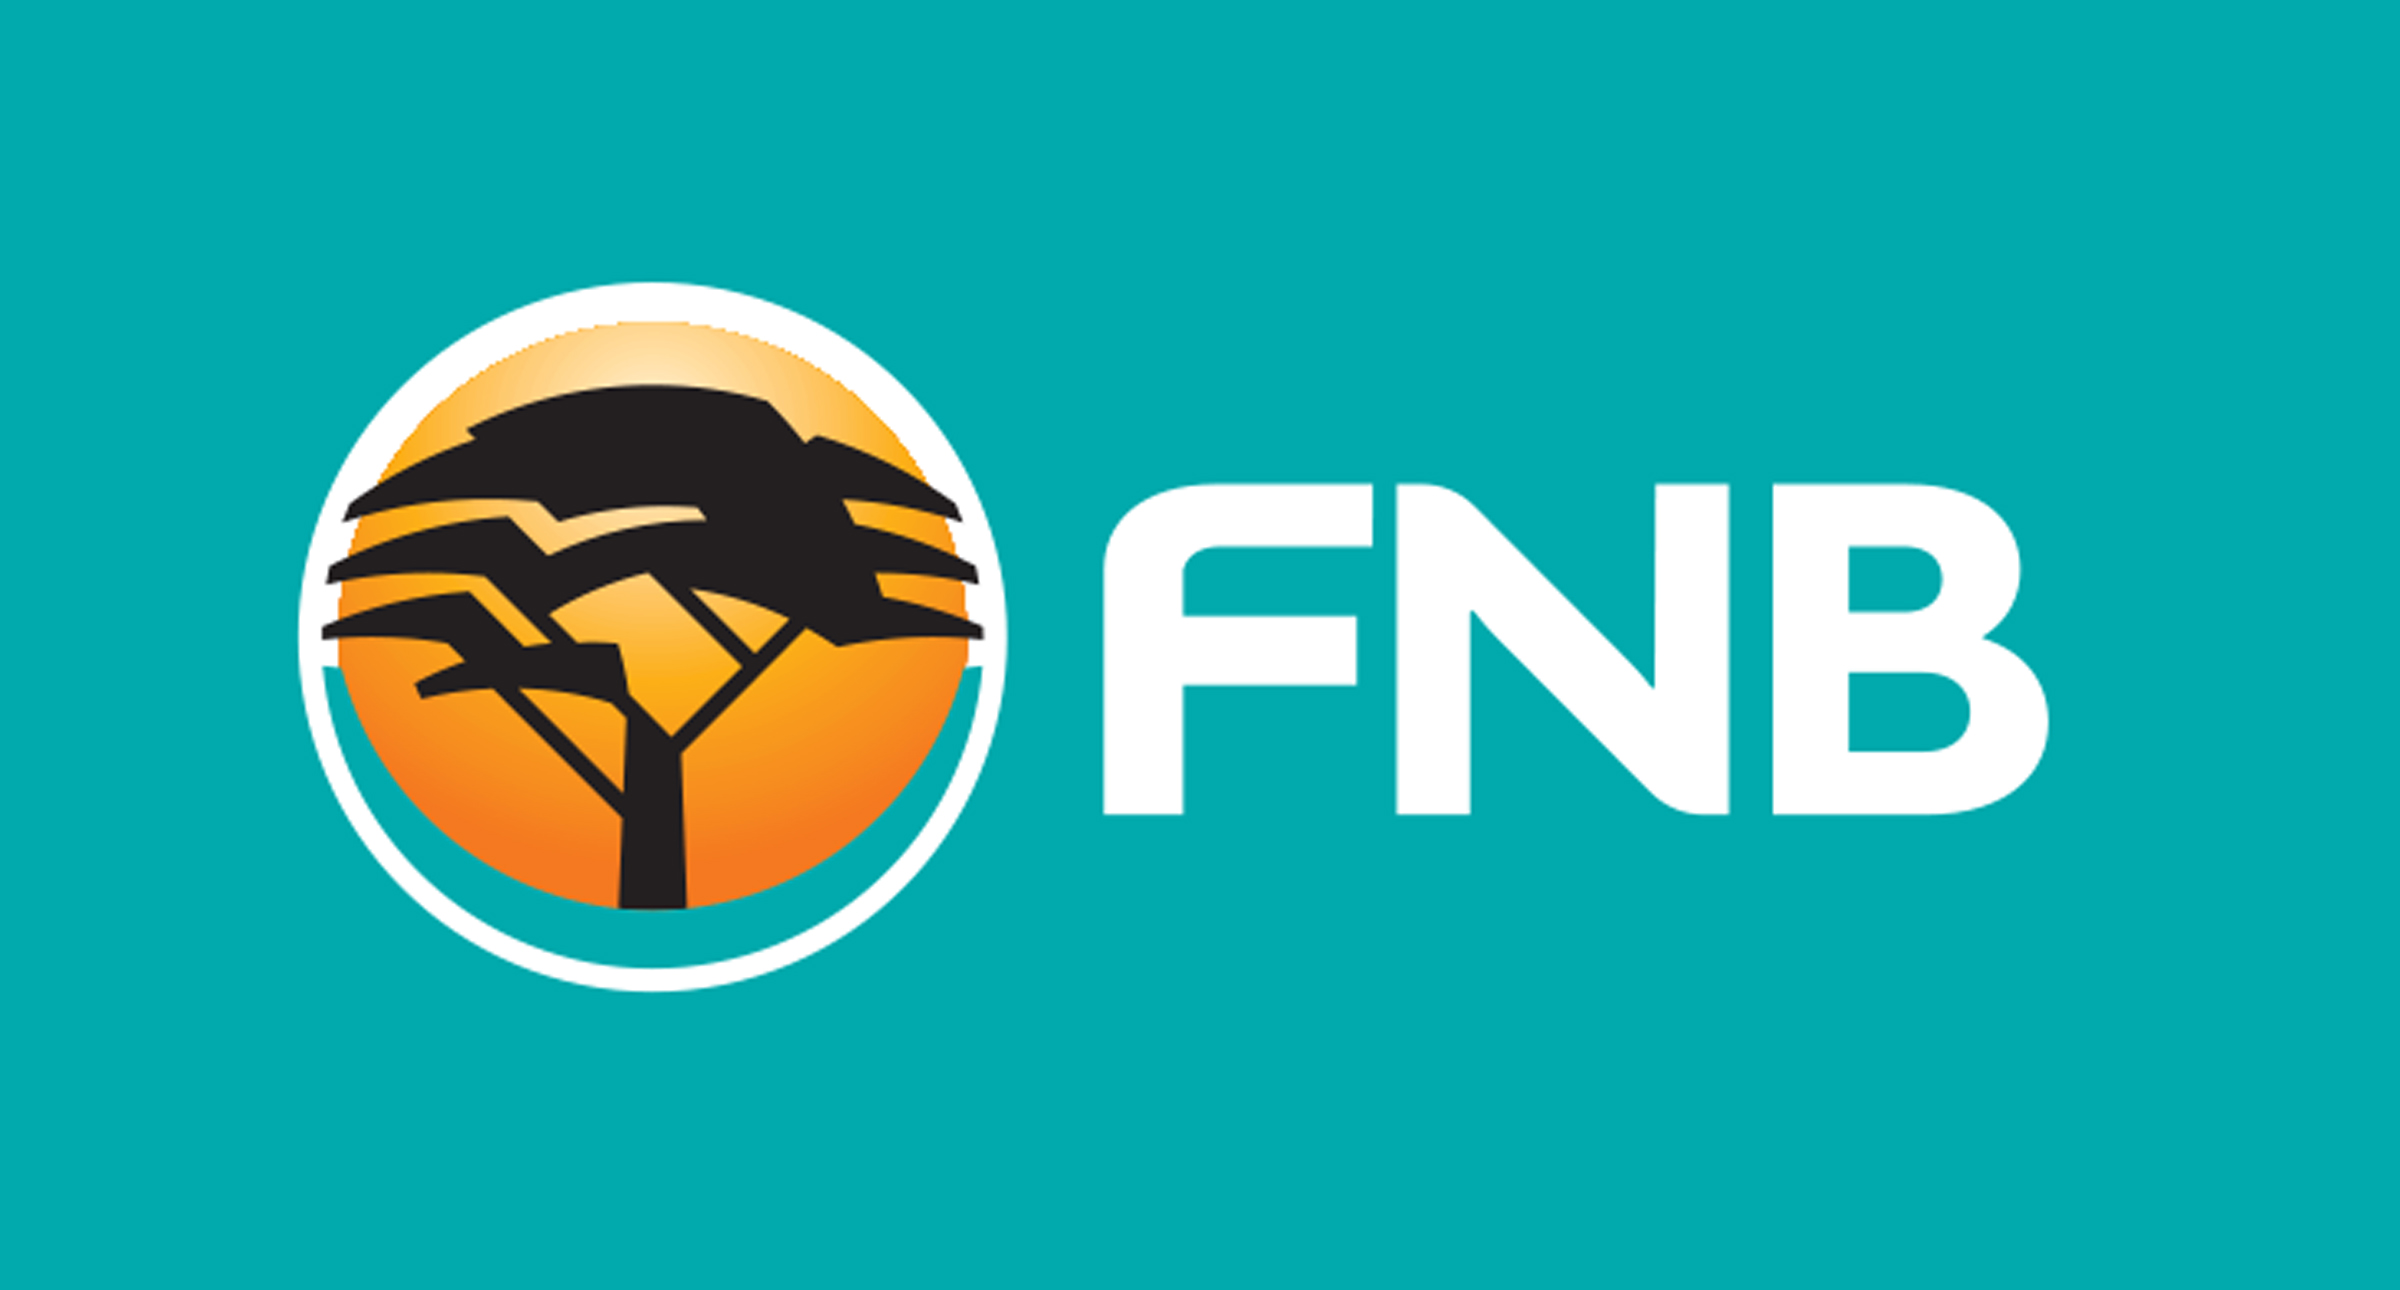 Fnb forex trading